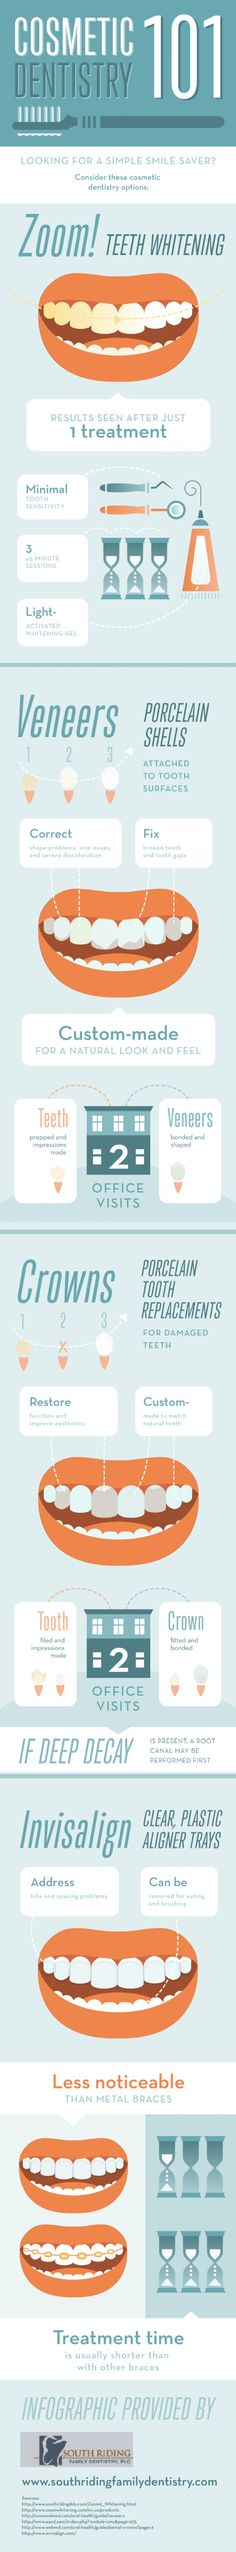 Cosmetic Dentistry 101 Infographic.#Dentist. New Smiles Dental Excellence, Frisco,TX is a Family and Cosmetic Dentist. NewSmilesFrisco.com